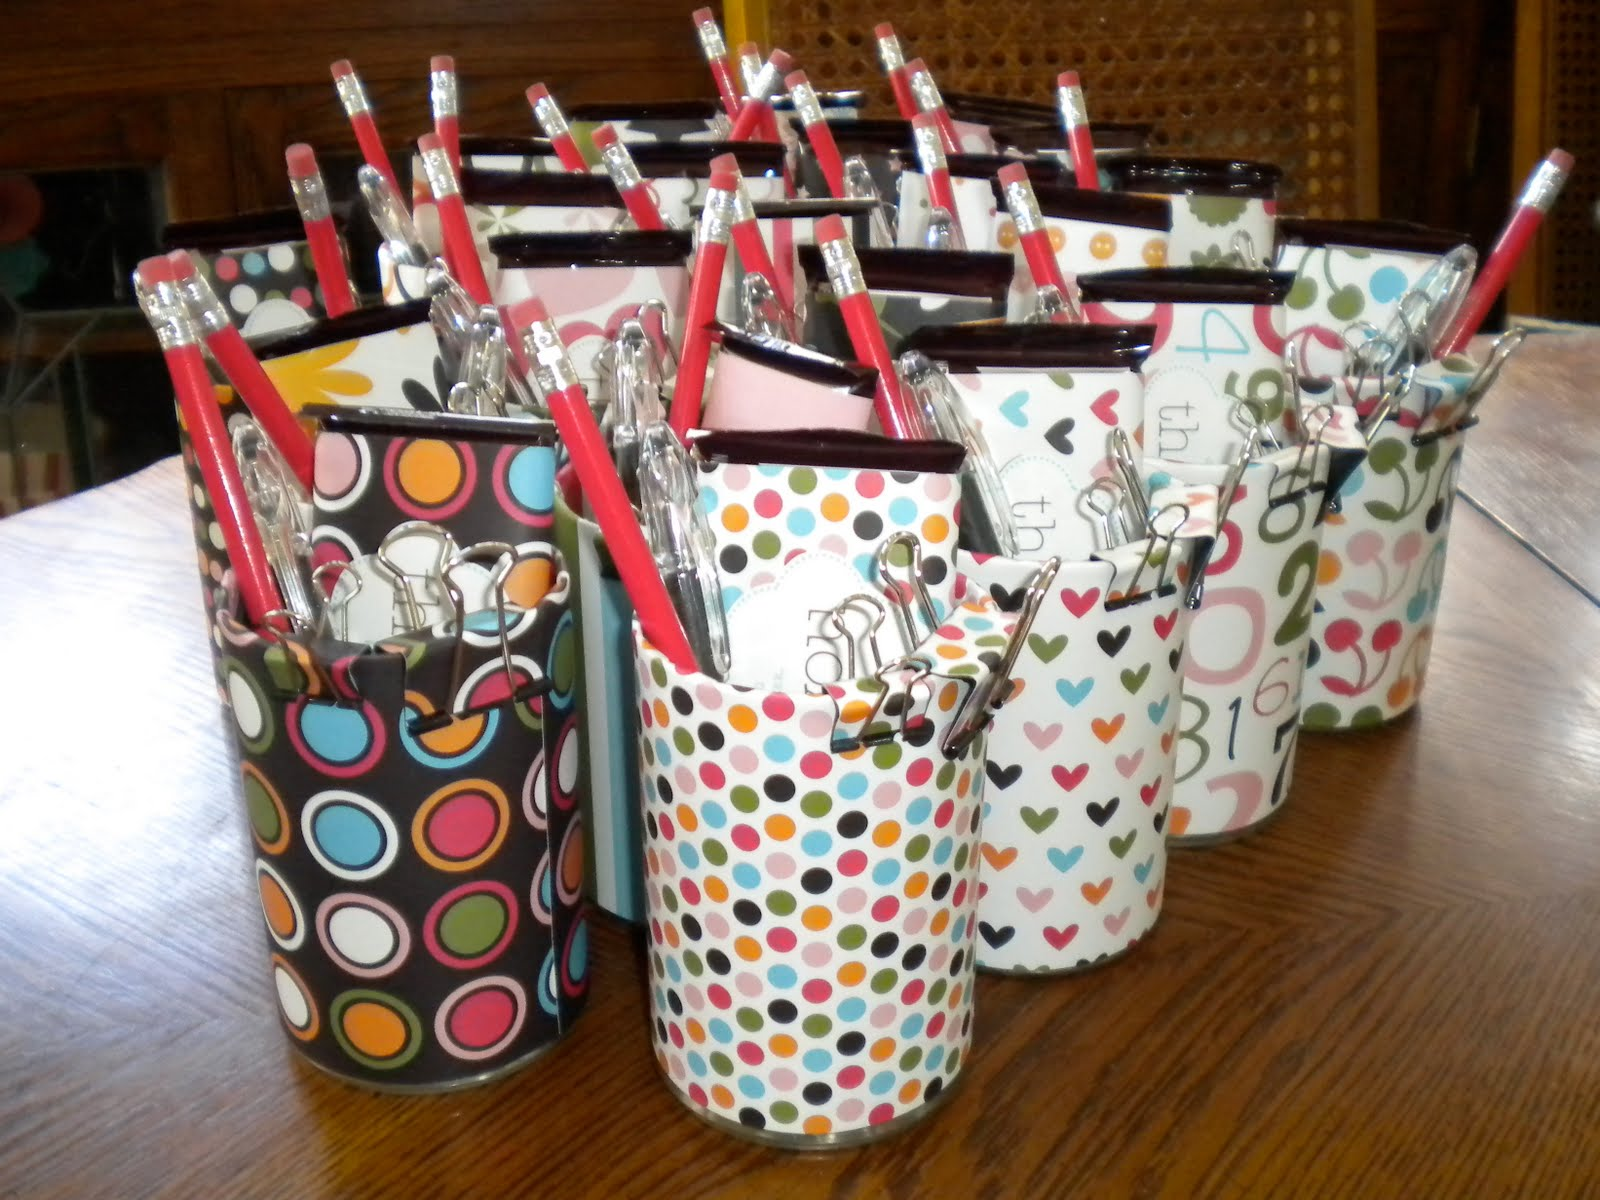 volunteer appreciation ideas for candy | just b.CAUSE